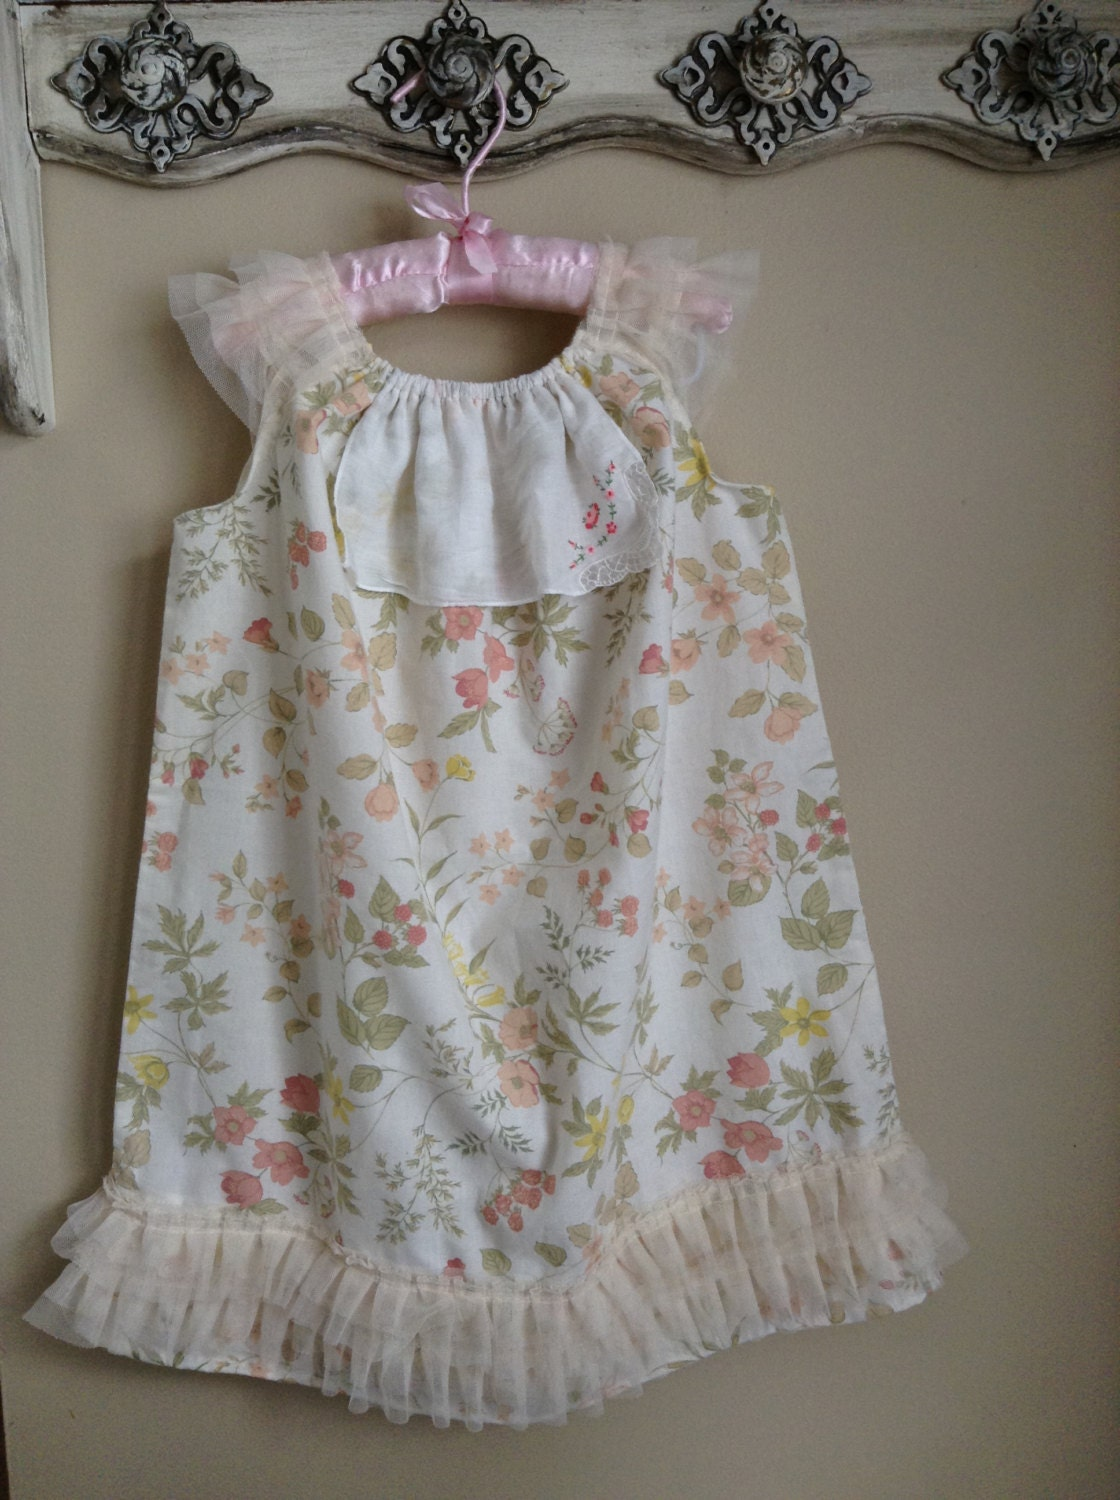 tea party dress upcycled eco friendly vintage shabby chic. Black Bedroom Furniture Sets. Home Design Ideas